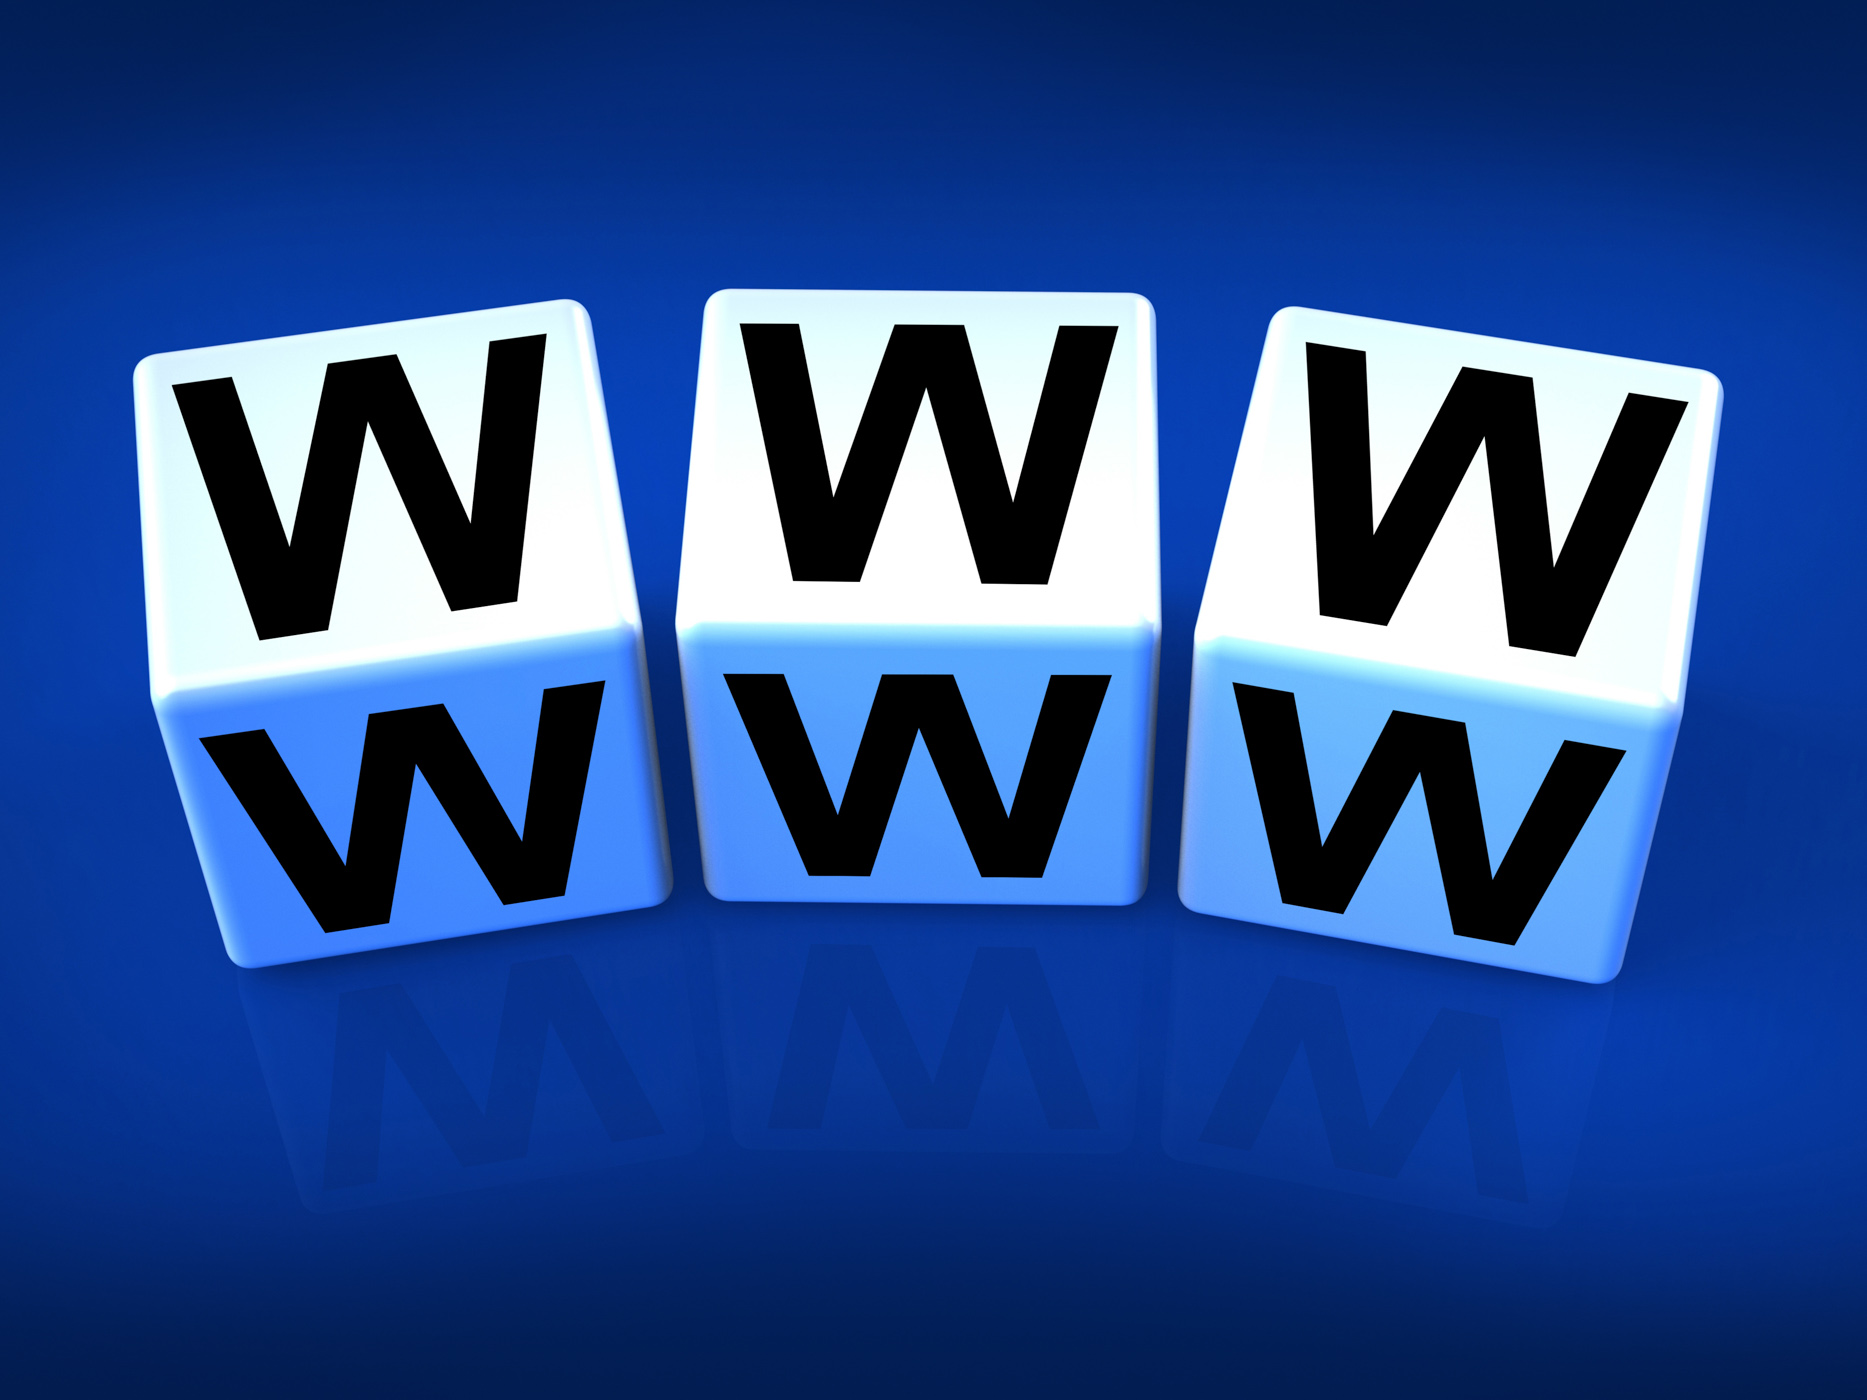 Www blocks refer to the world wide web photo